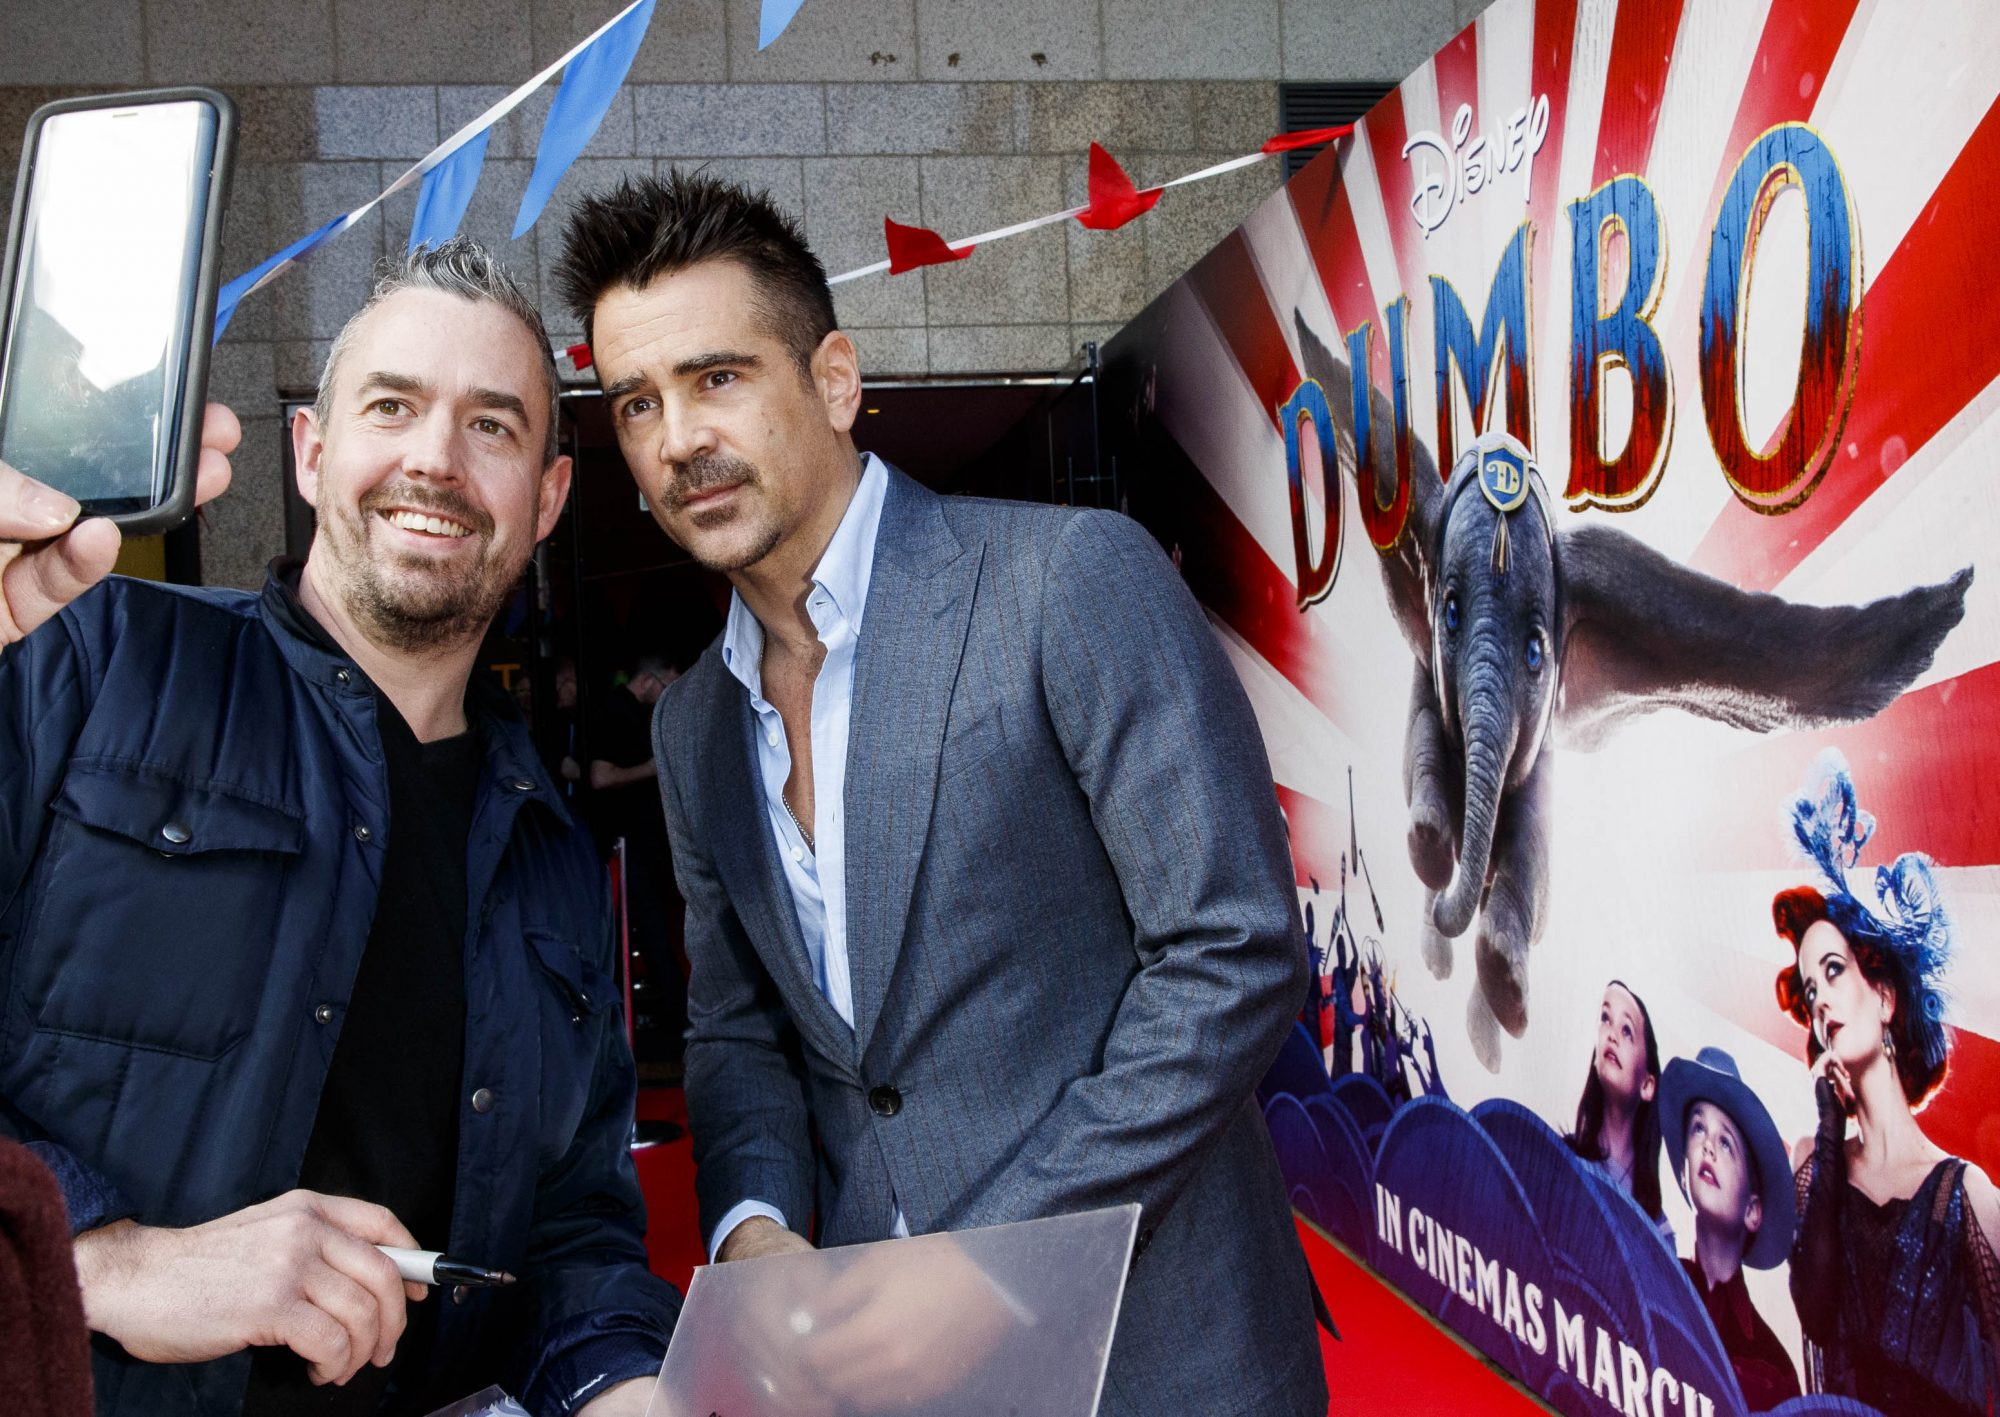 24/03/2019 Colin Farrell poses for pics with fans on the red carpet at the Irish Premiere screening of Disney's DUMBO in the Light House Cinema Dublin. Picture: Andres Poveda